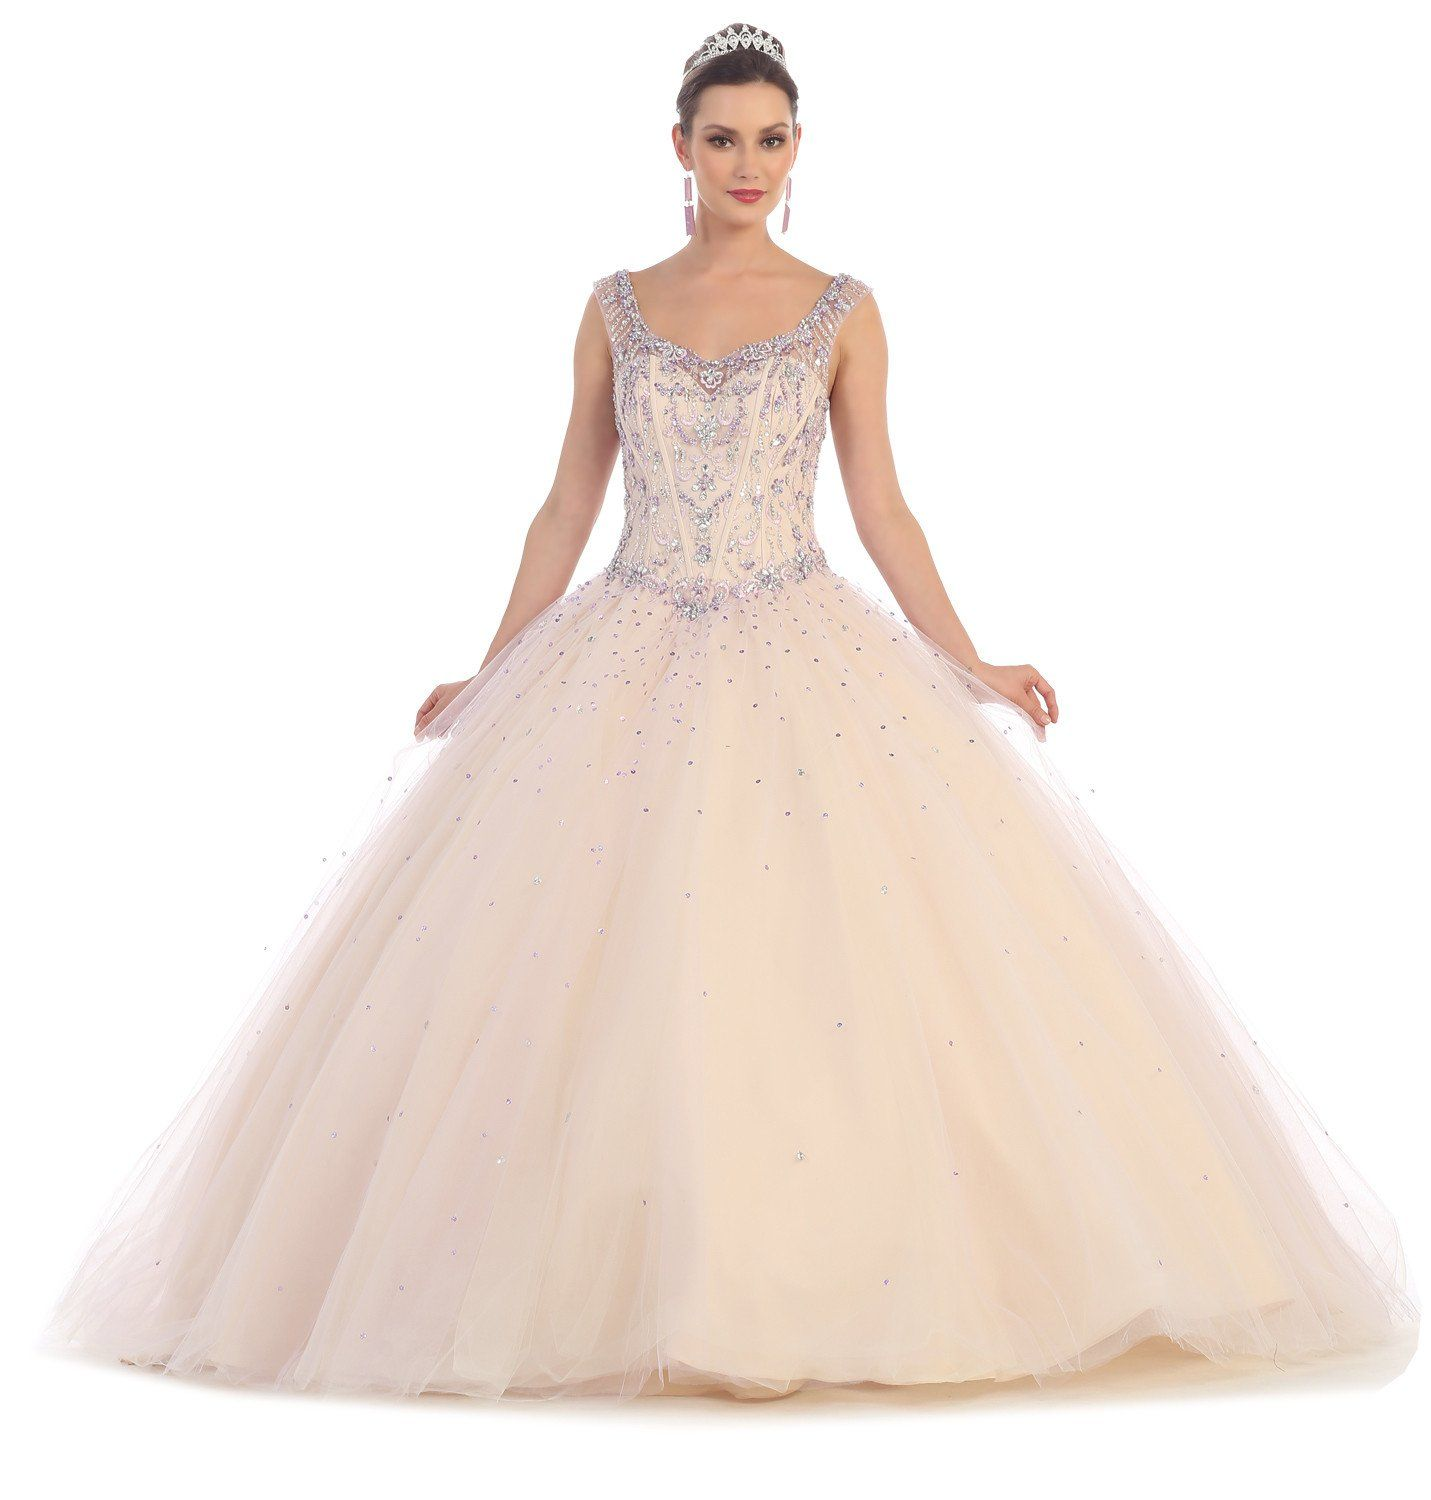 Quinceanera quinceanera sweet ball gown prom long dress in